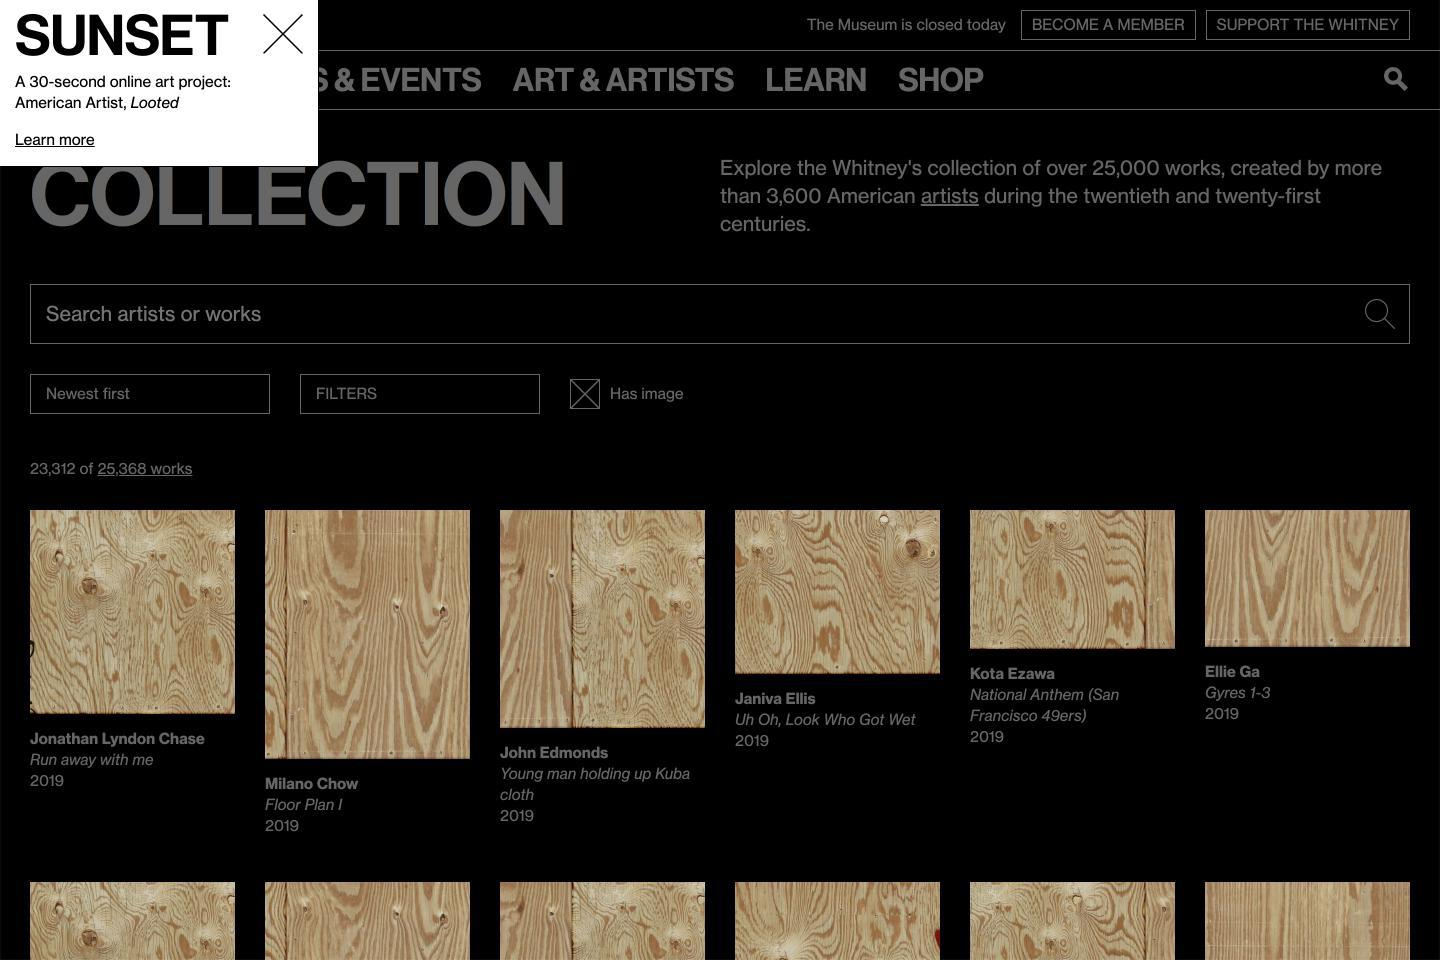 American Artist, Looted, 2020, for the 'Sunrise/Sunset' series on artport, screenshot. Courtesy: the artist and Whitney Museum of American Art, New York